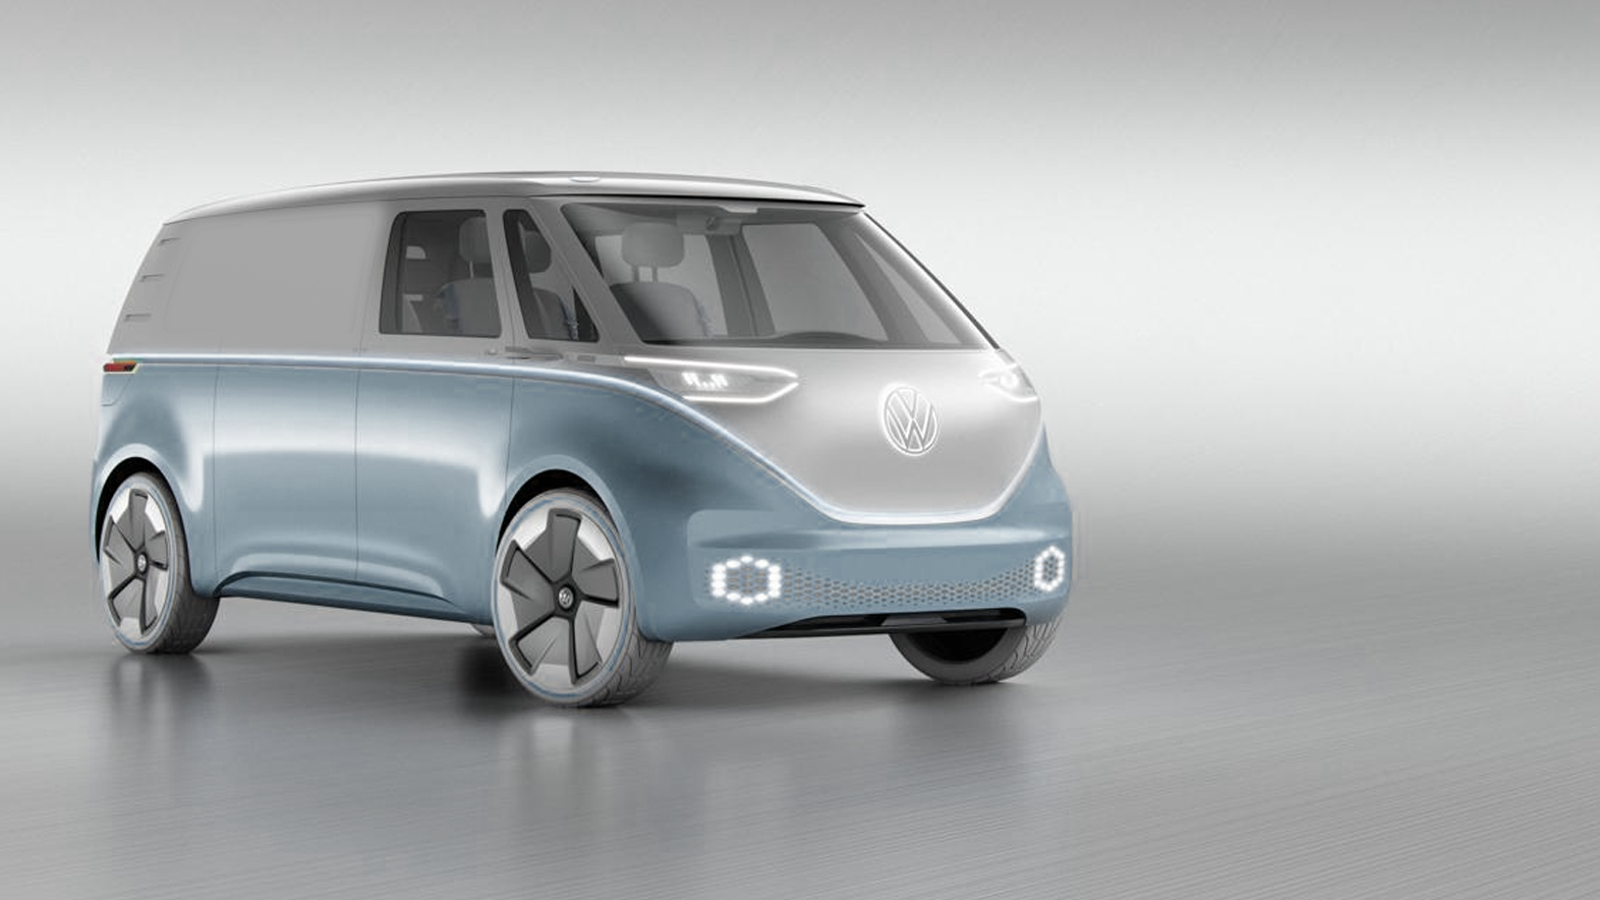 Volkswagen's New Microbus Will Get The Cargo Trim We Deserve